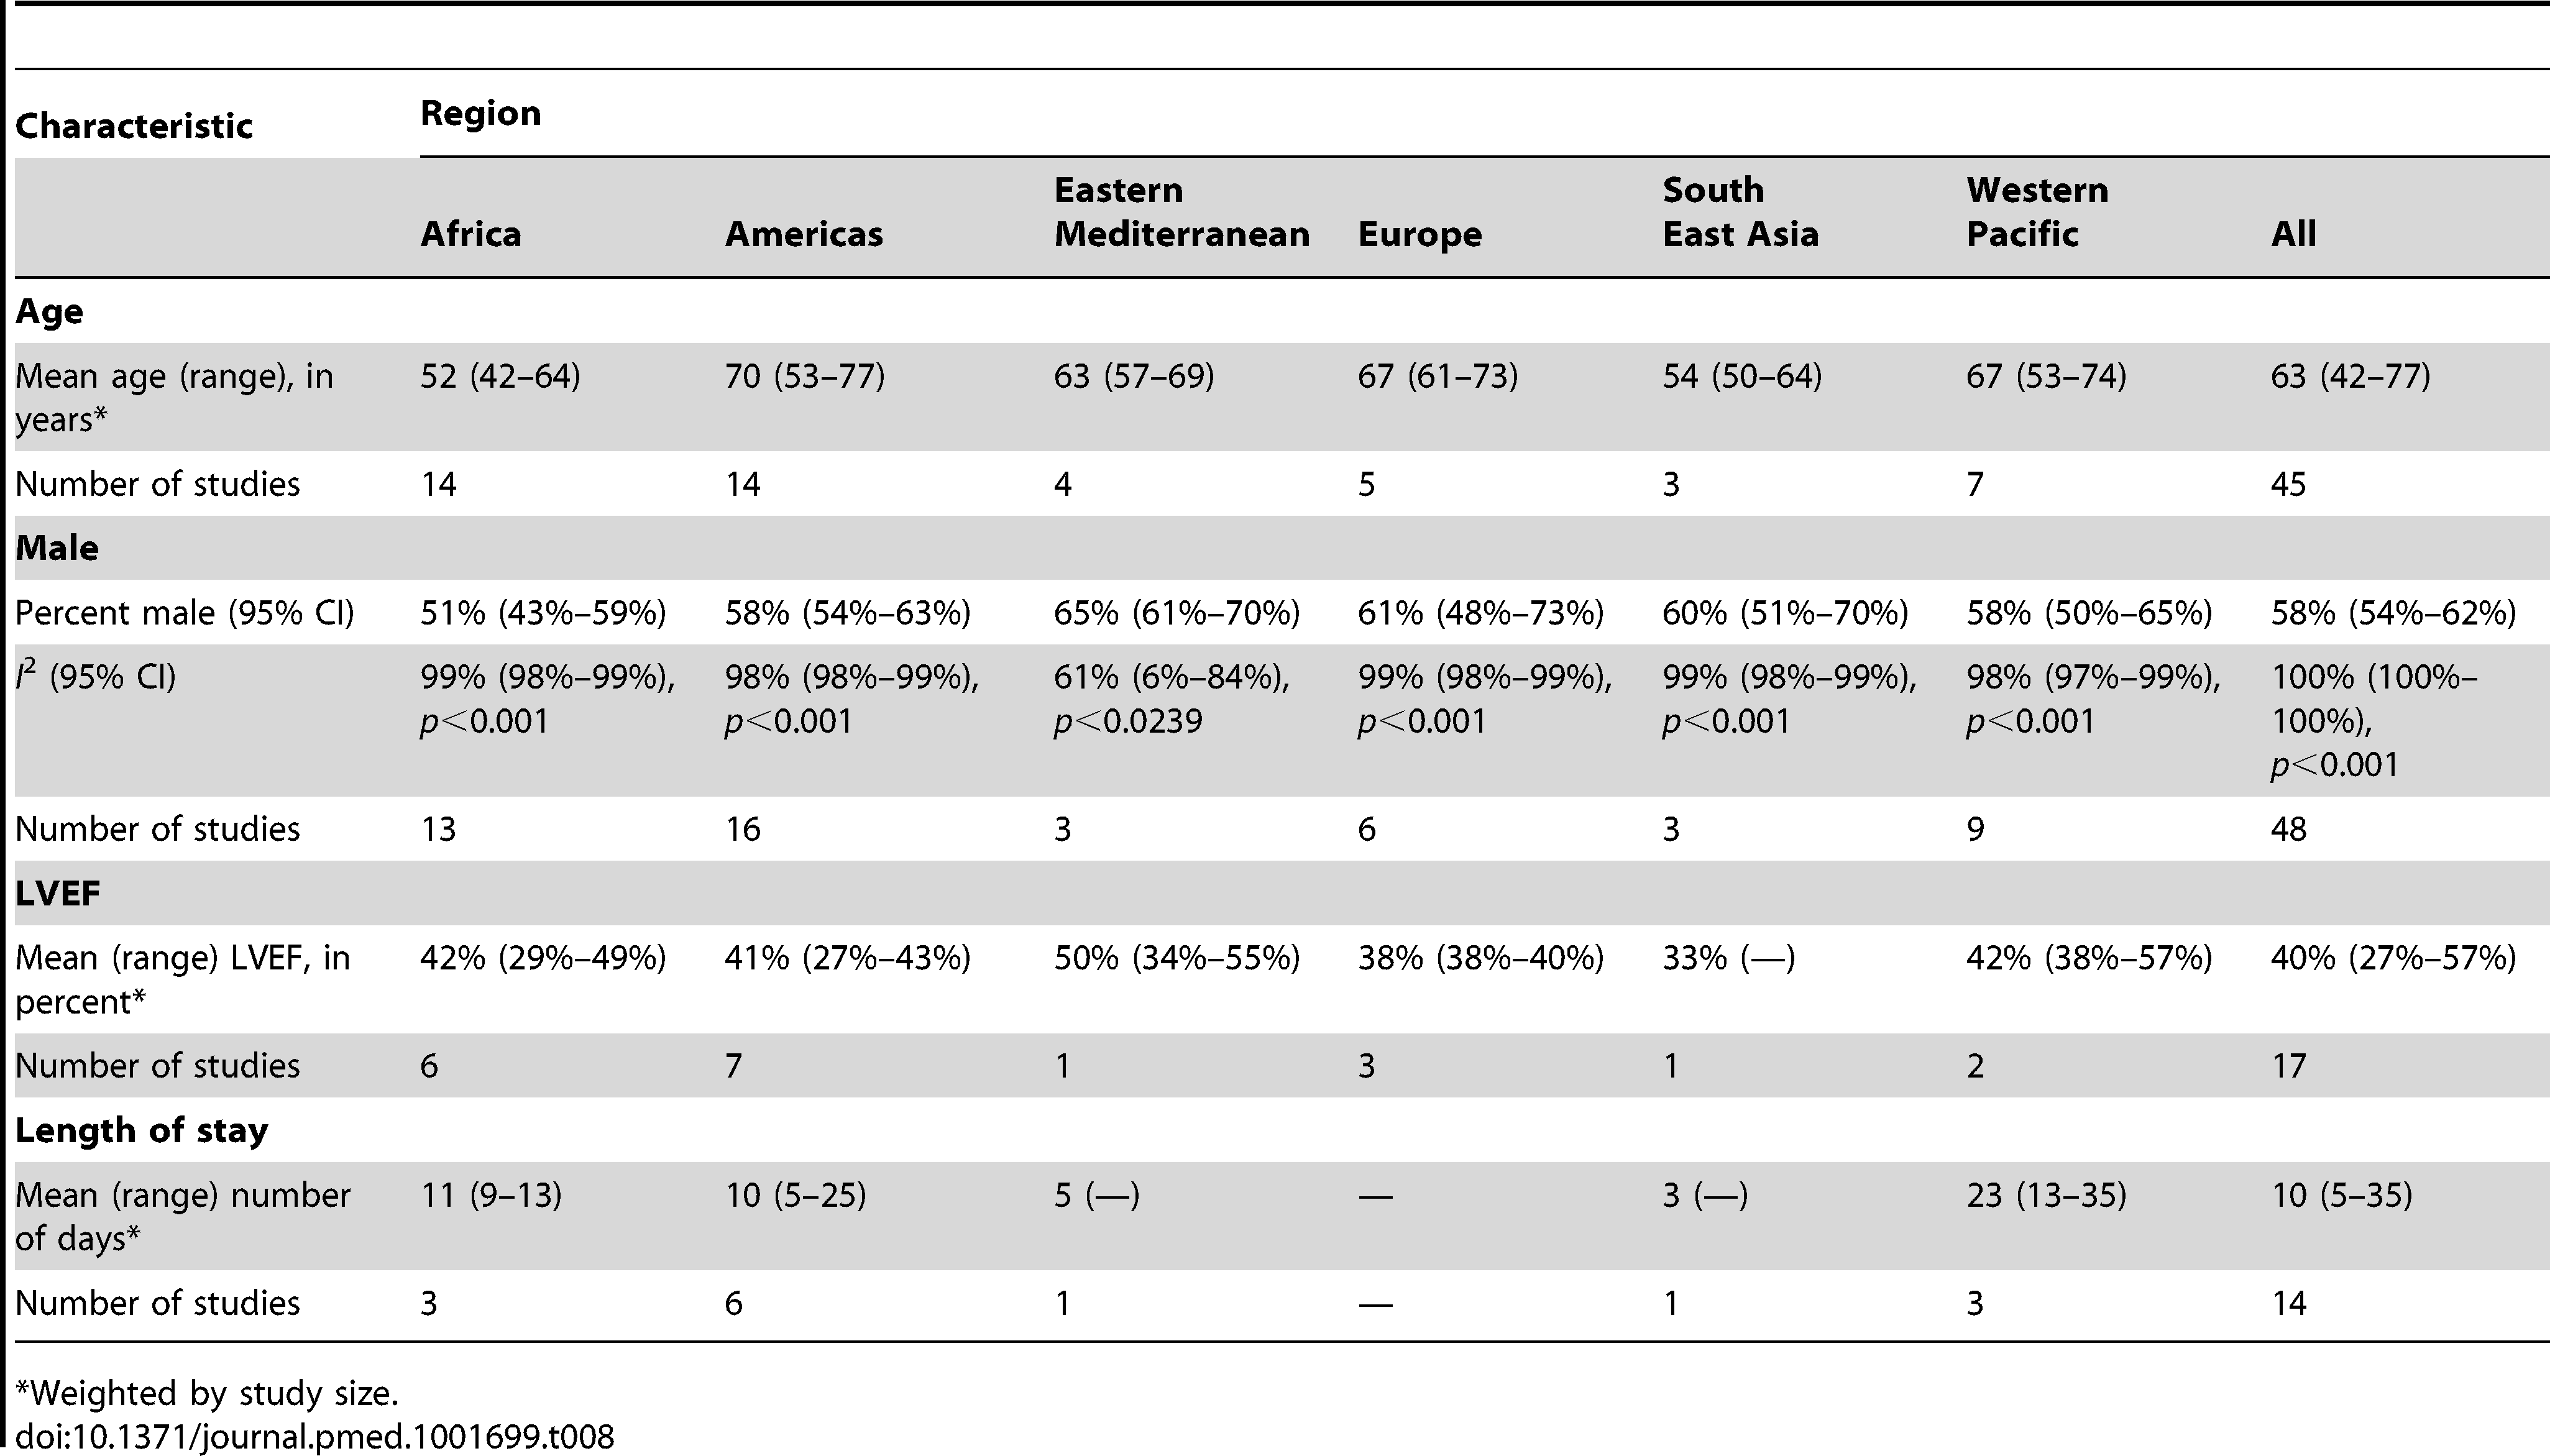 Characteristics of patients, by region.